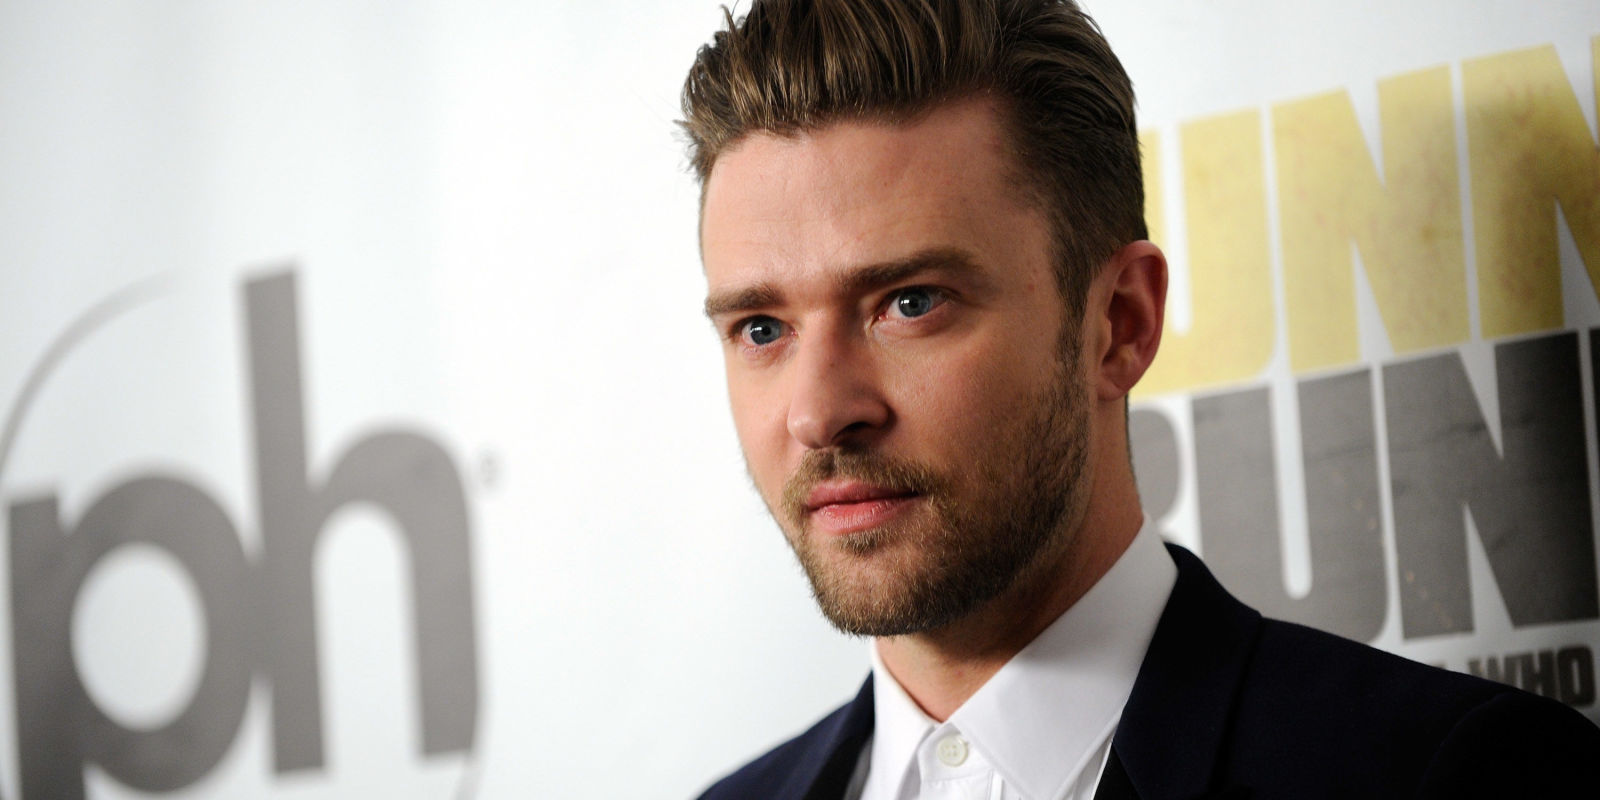 Justin Timberlake new album: 2016 release date, songs ... Justin Timberlake Tour Date